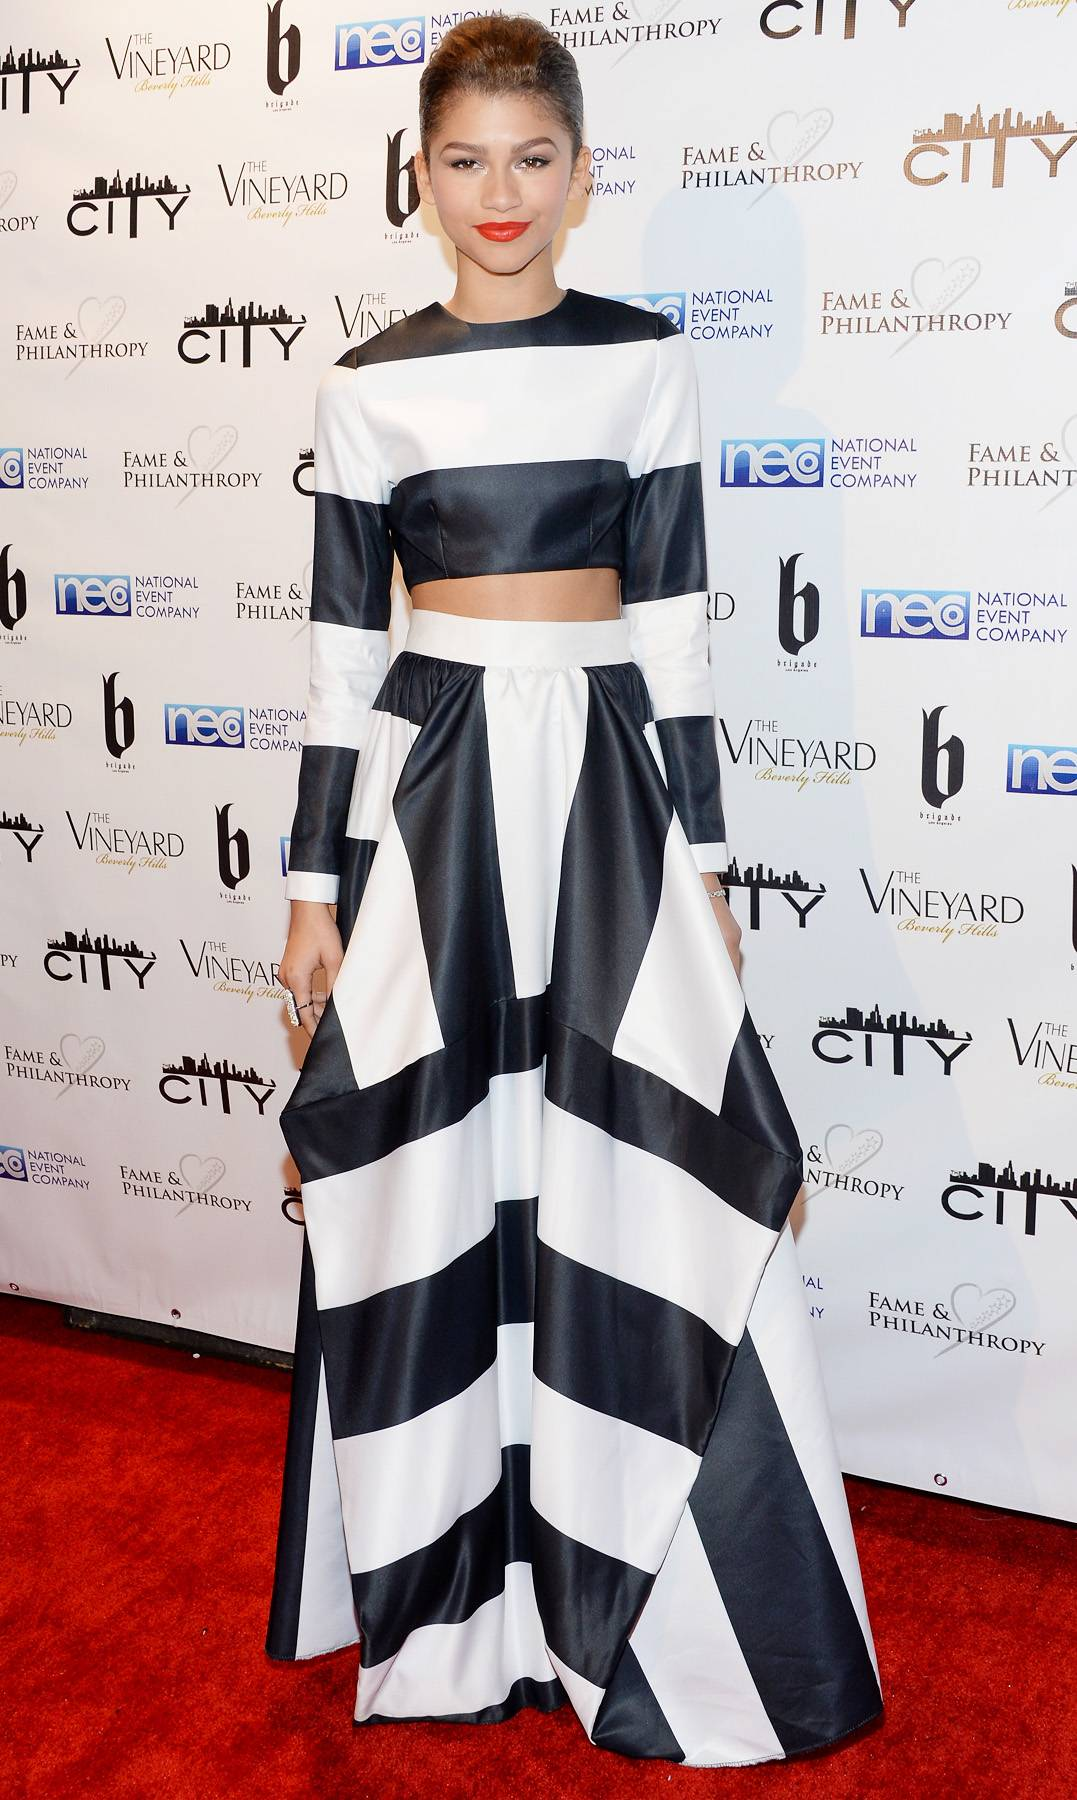 Bold and Beautiful - The young starlet knows what flatters her frame and this Nicci Houstriped crop top and full skirt does wonders.  Get into the trend: coordinating tops and bottoms in the same pattern with just a hint of tummy showing.  (Photo: Jason Kempin/Getty Images)